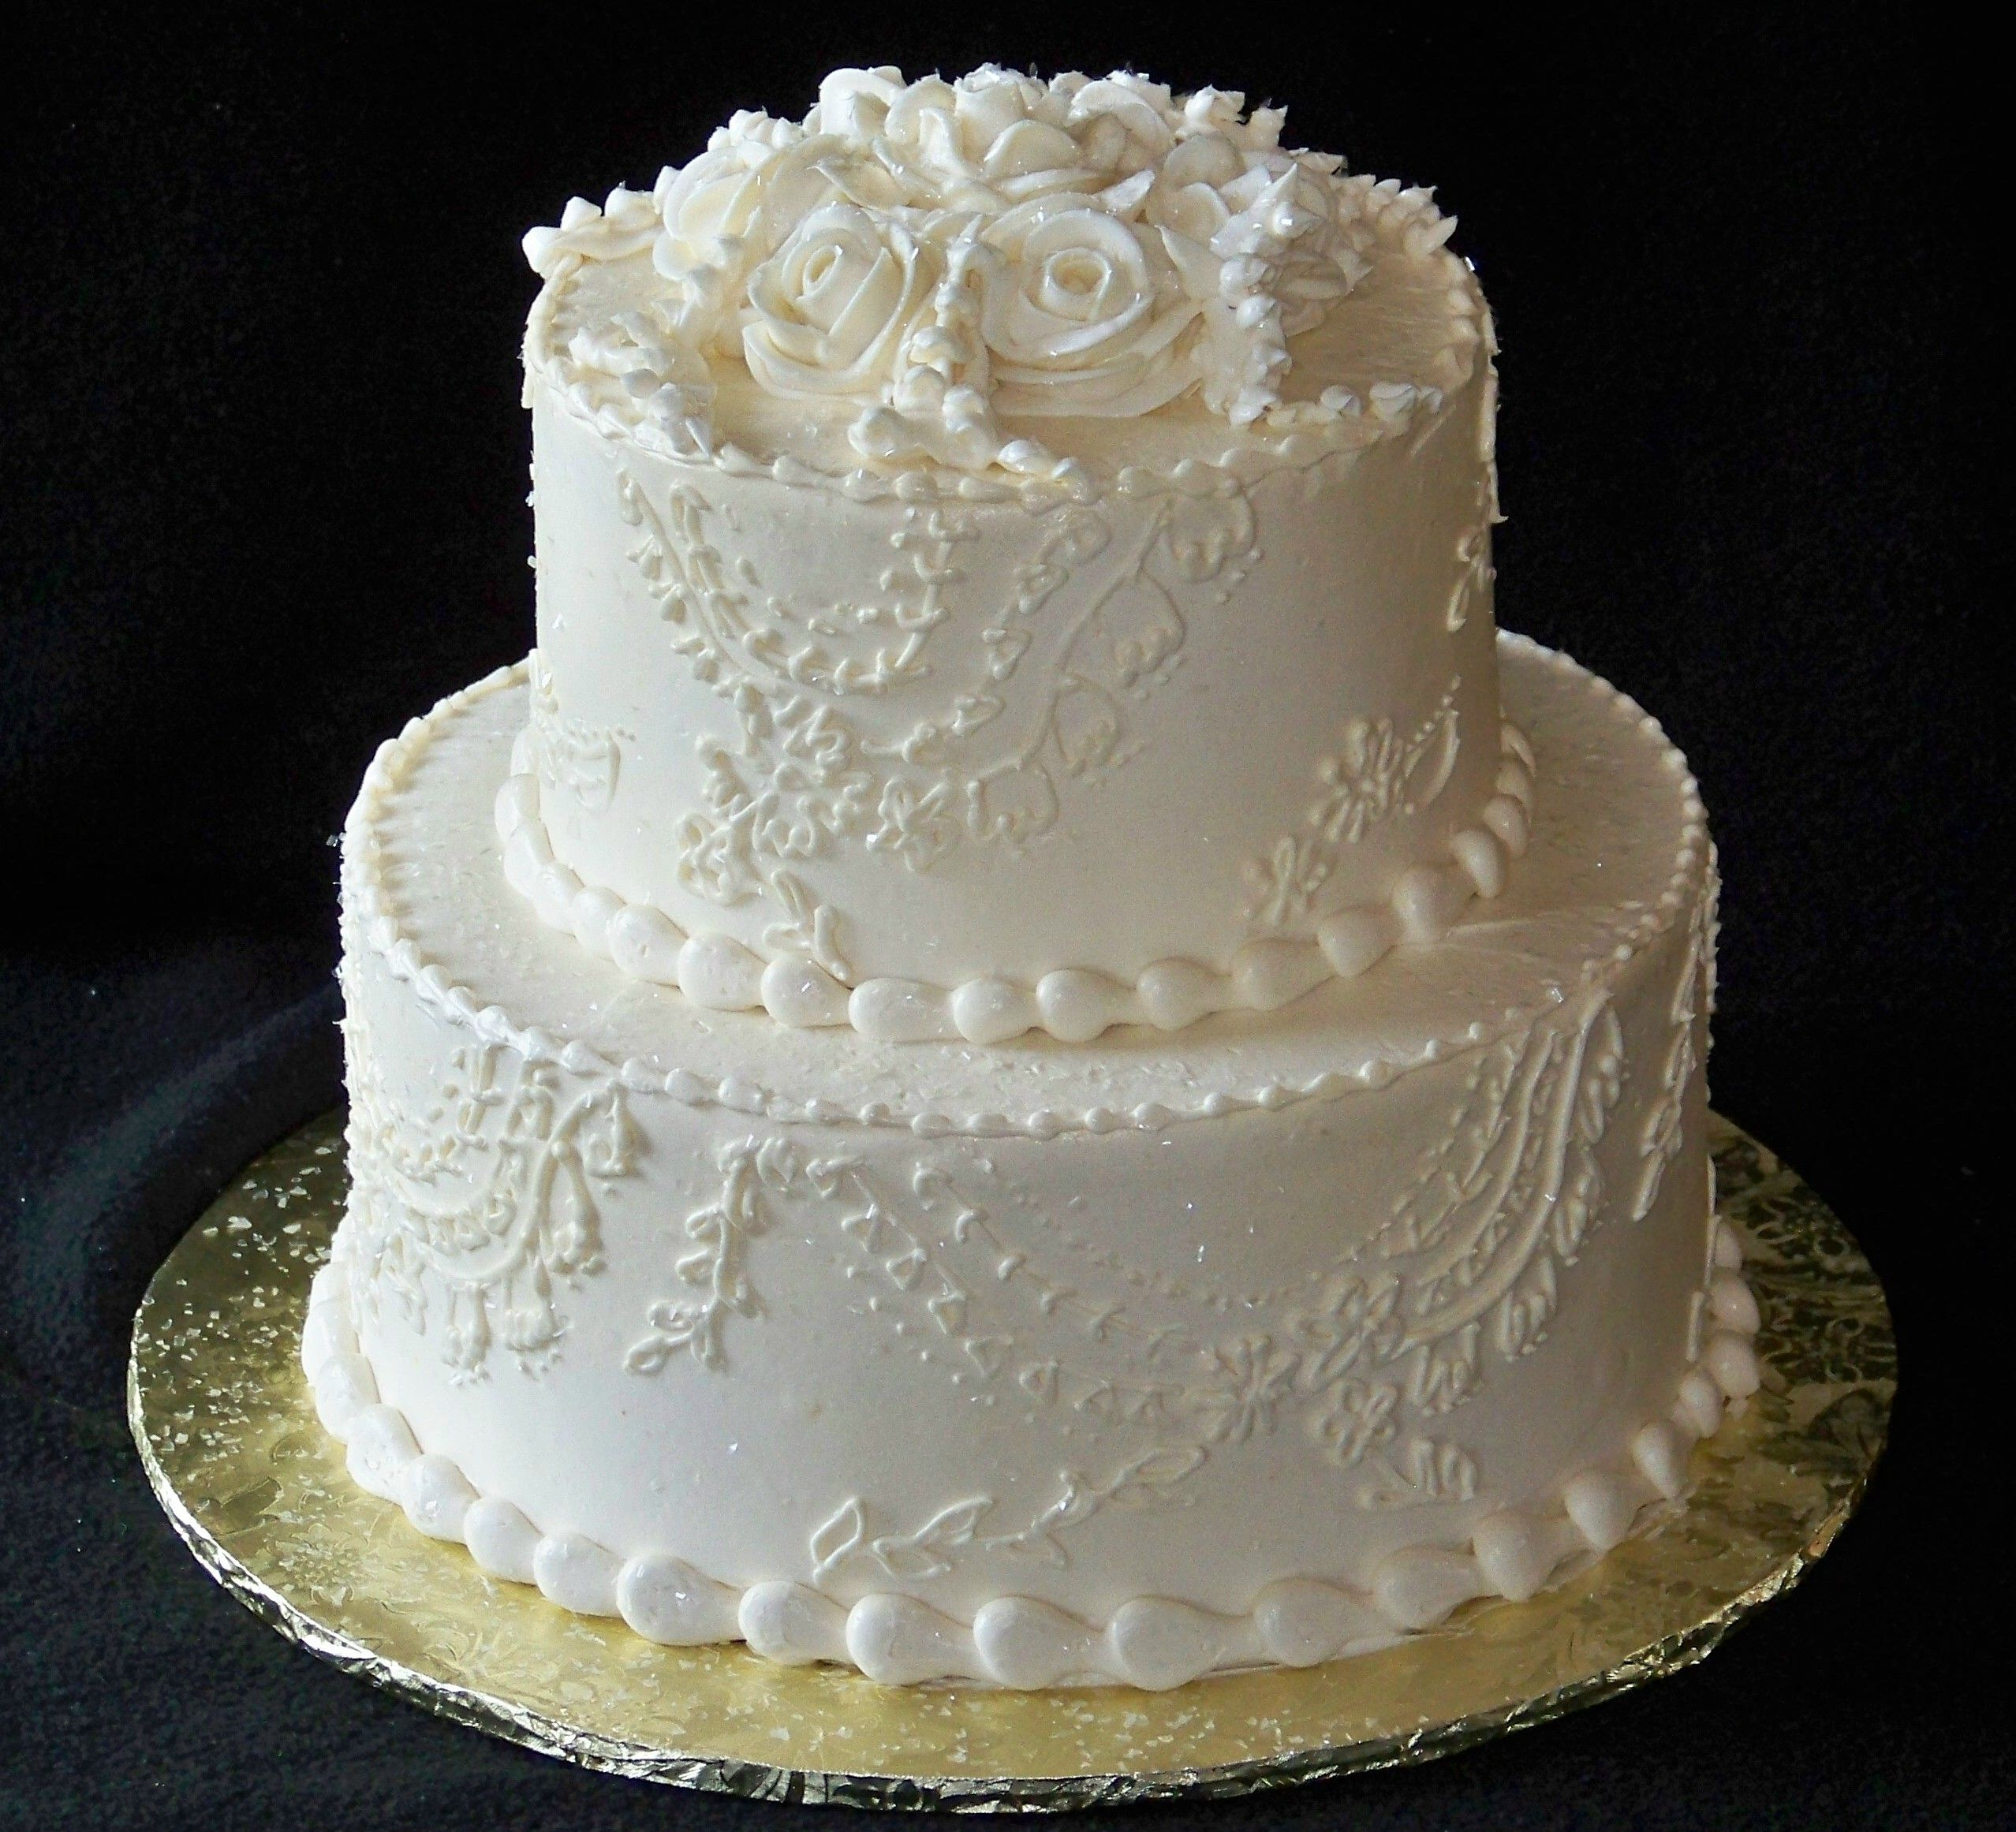 wedding cake pictures Photos are the property of Lakes